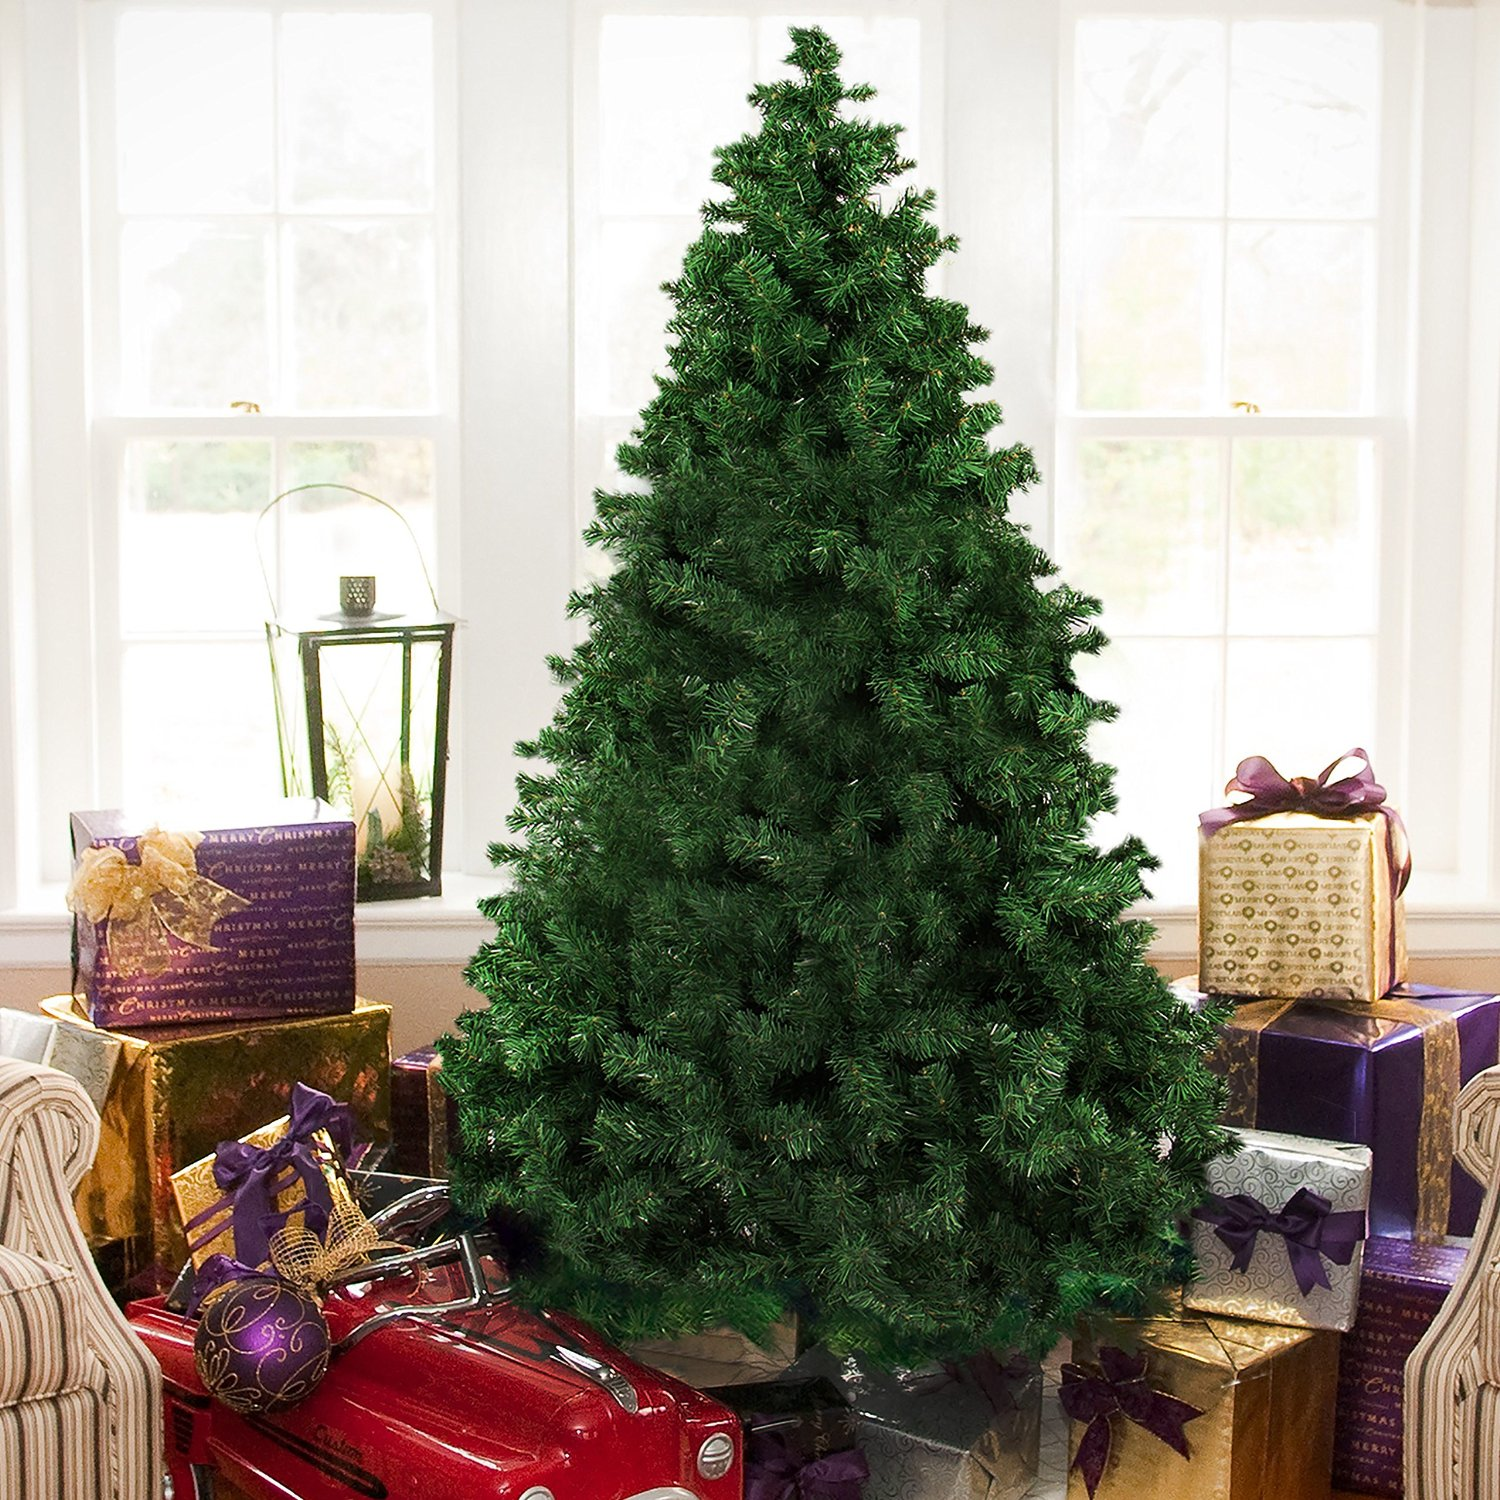 01-Artificial Christmas Trees 10 Tips for Quick and Easy Setup